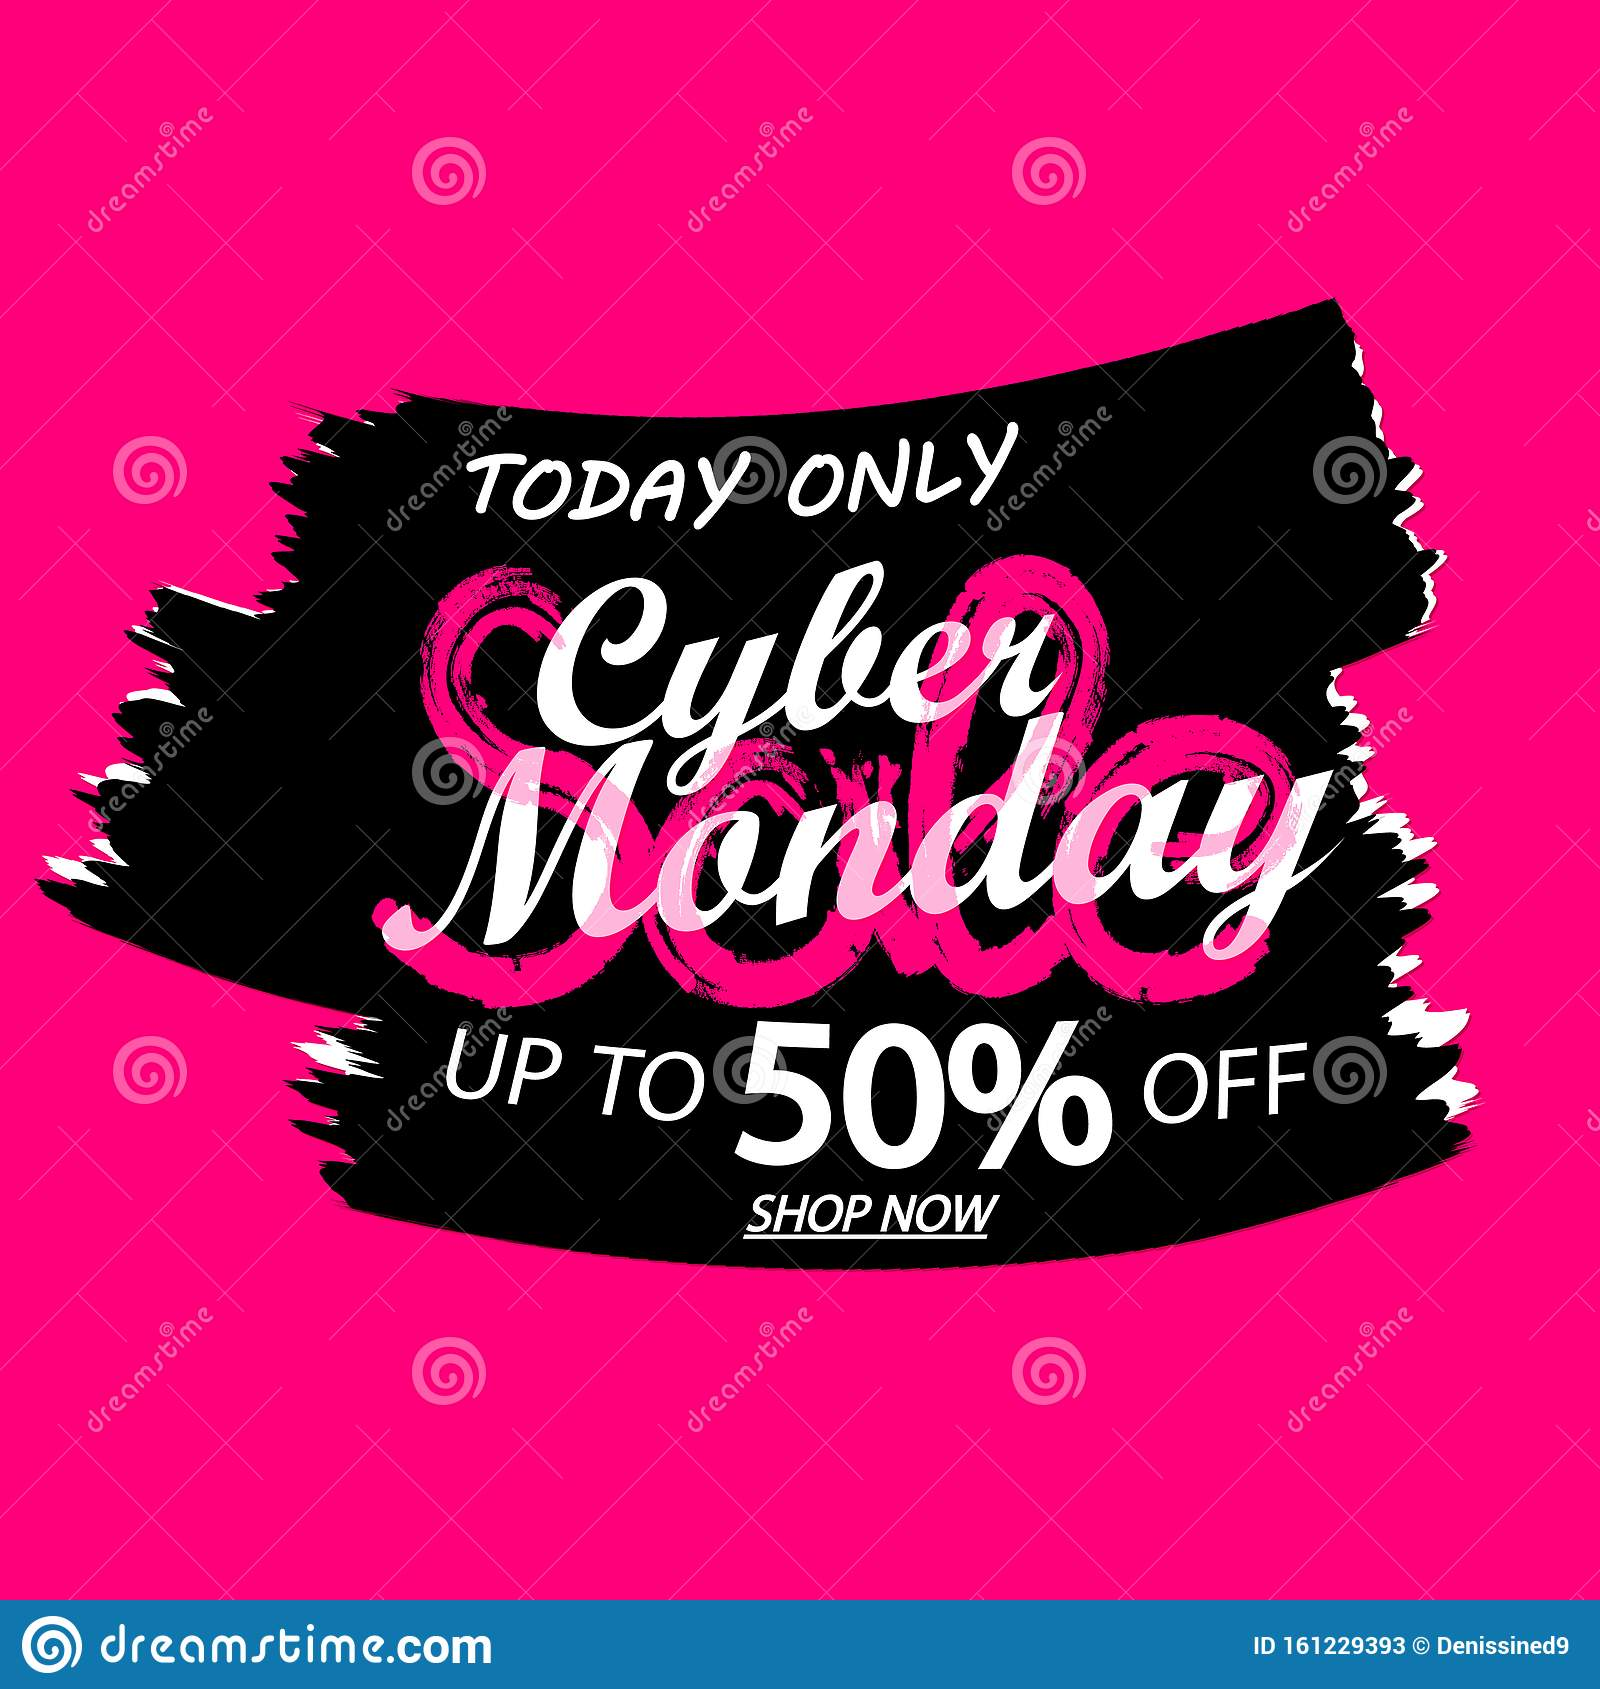 Cyber Monday Sale 50 Off, Banner Design Template, Discount